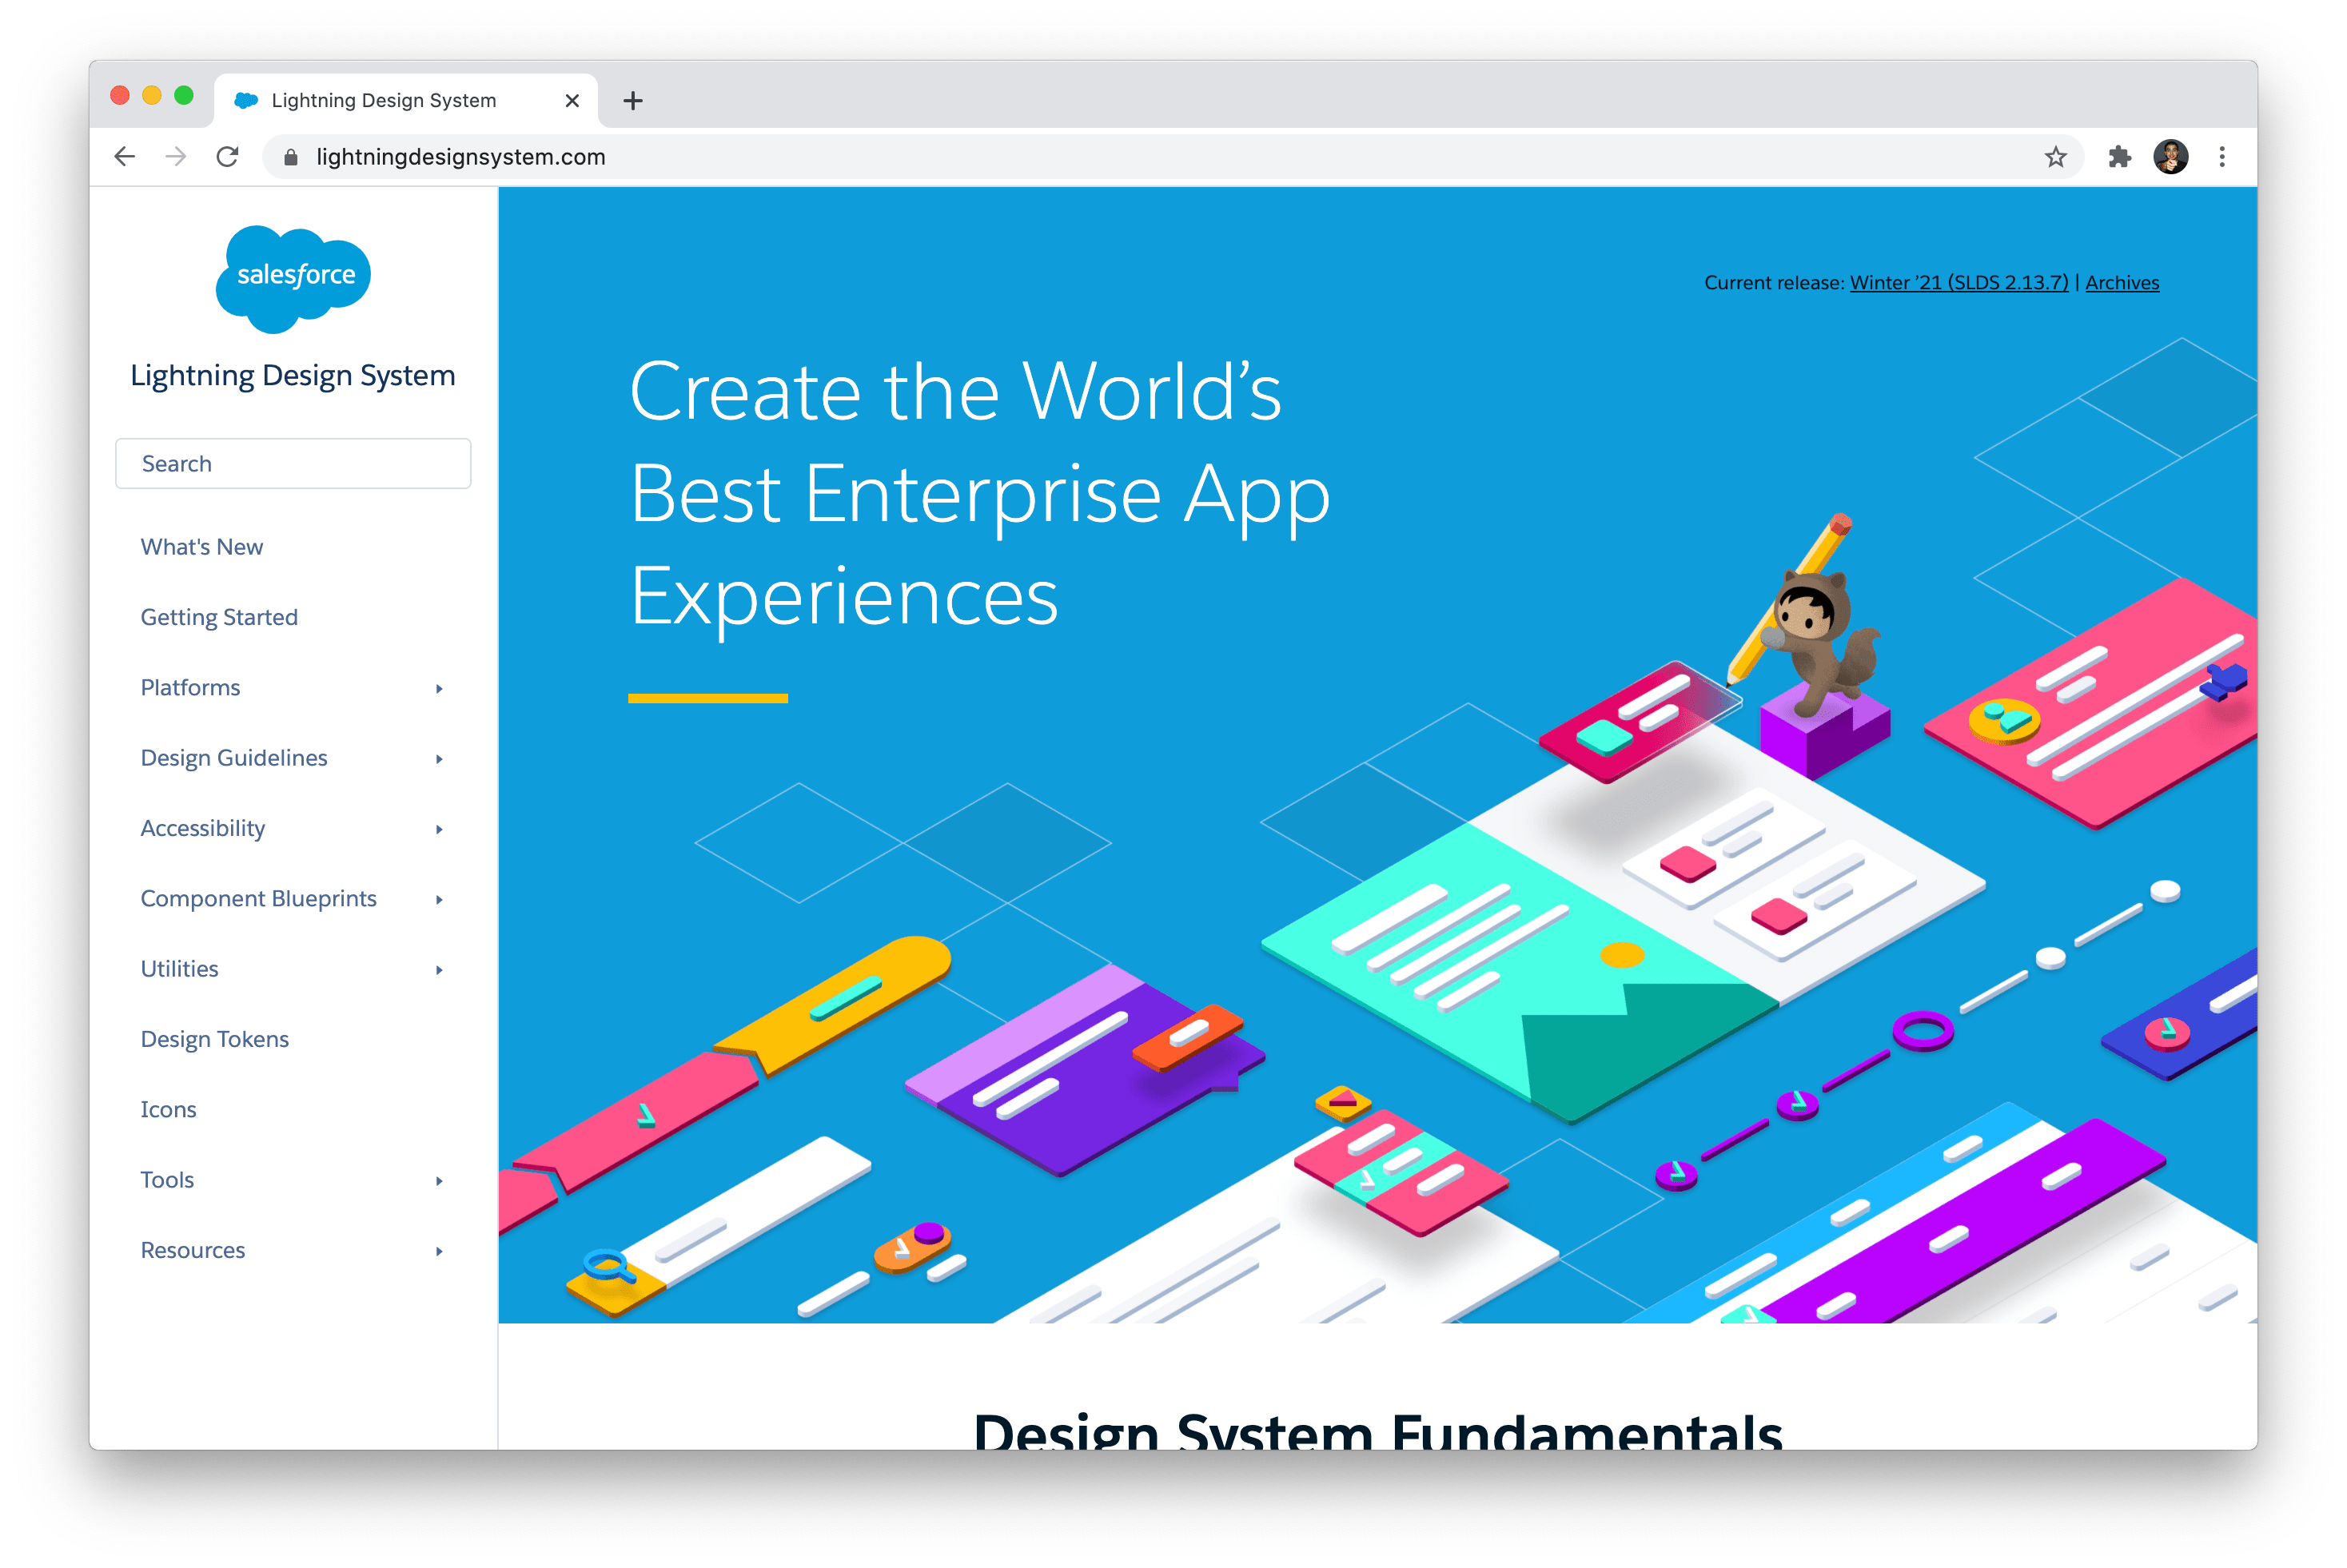 A screenshot of the Lightning Design System homepage.